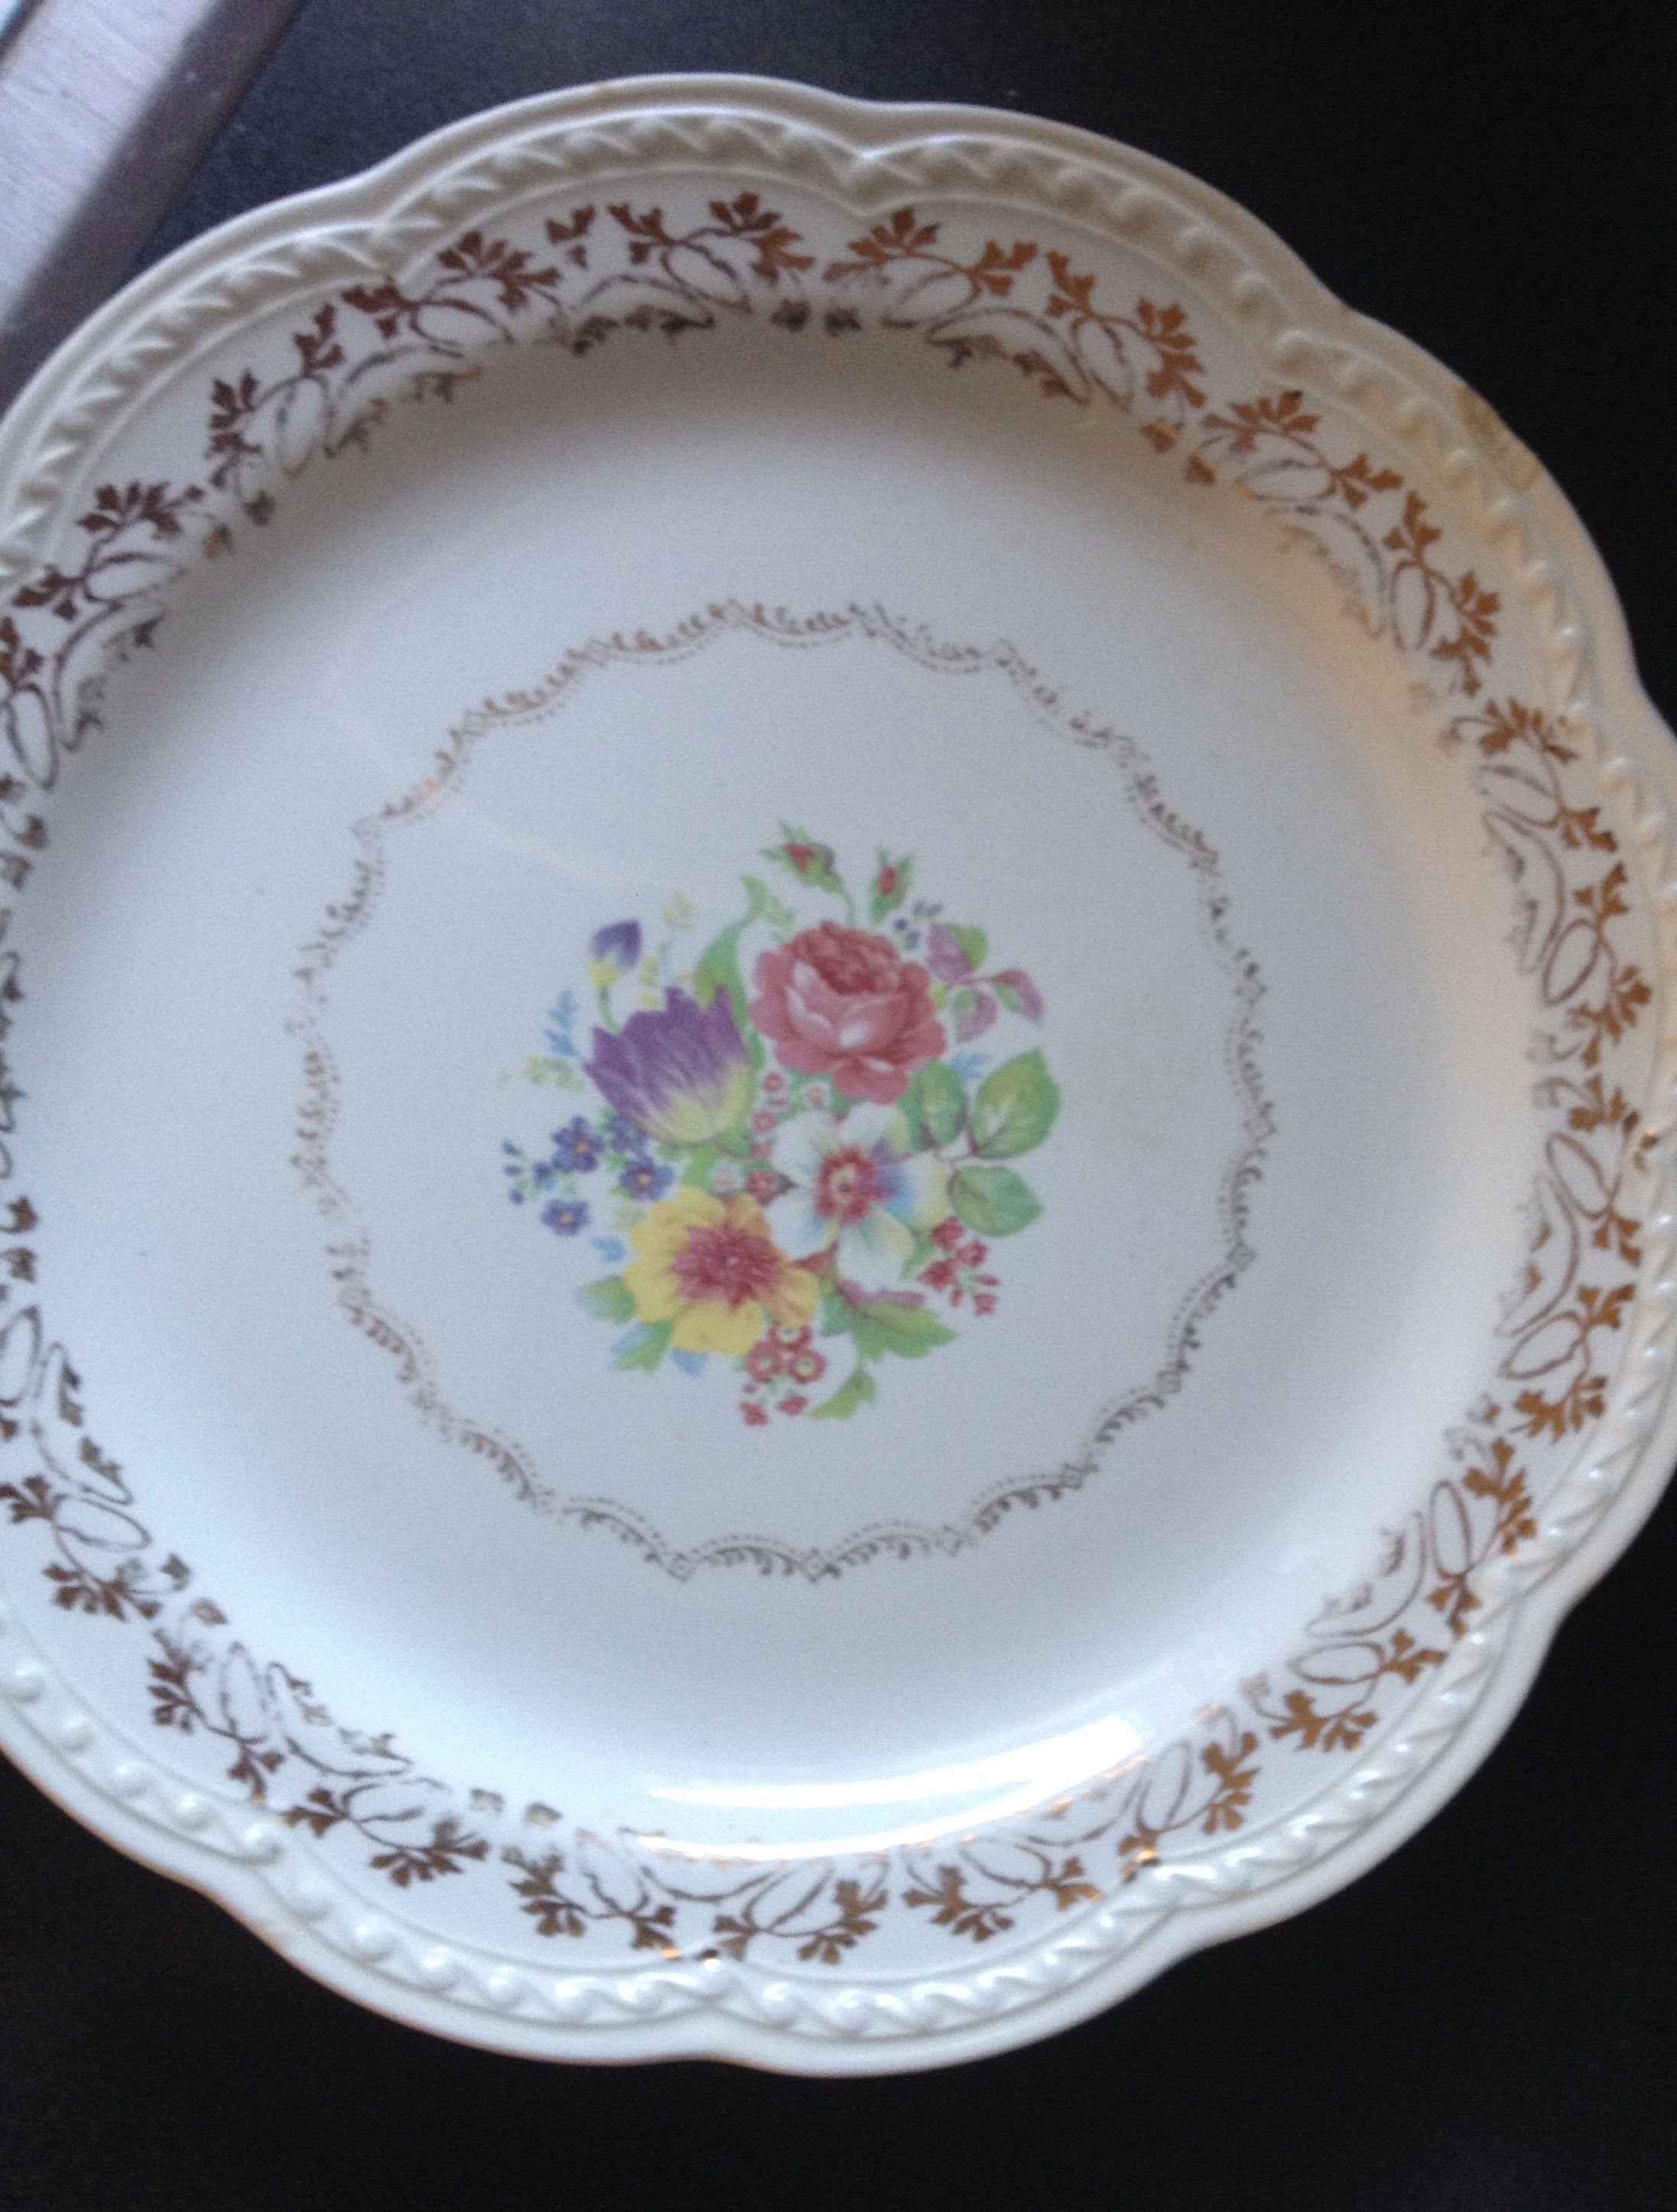 best sneakers competitive price usa cheap sale Stetson China Dinner Plate. Floral Pattern 22kt gold trim ...